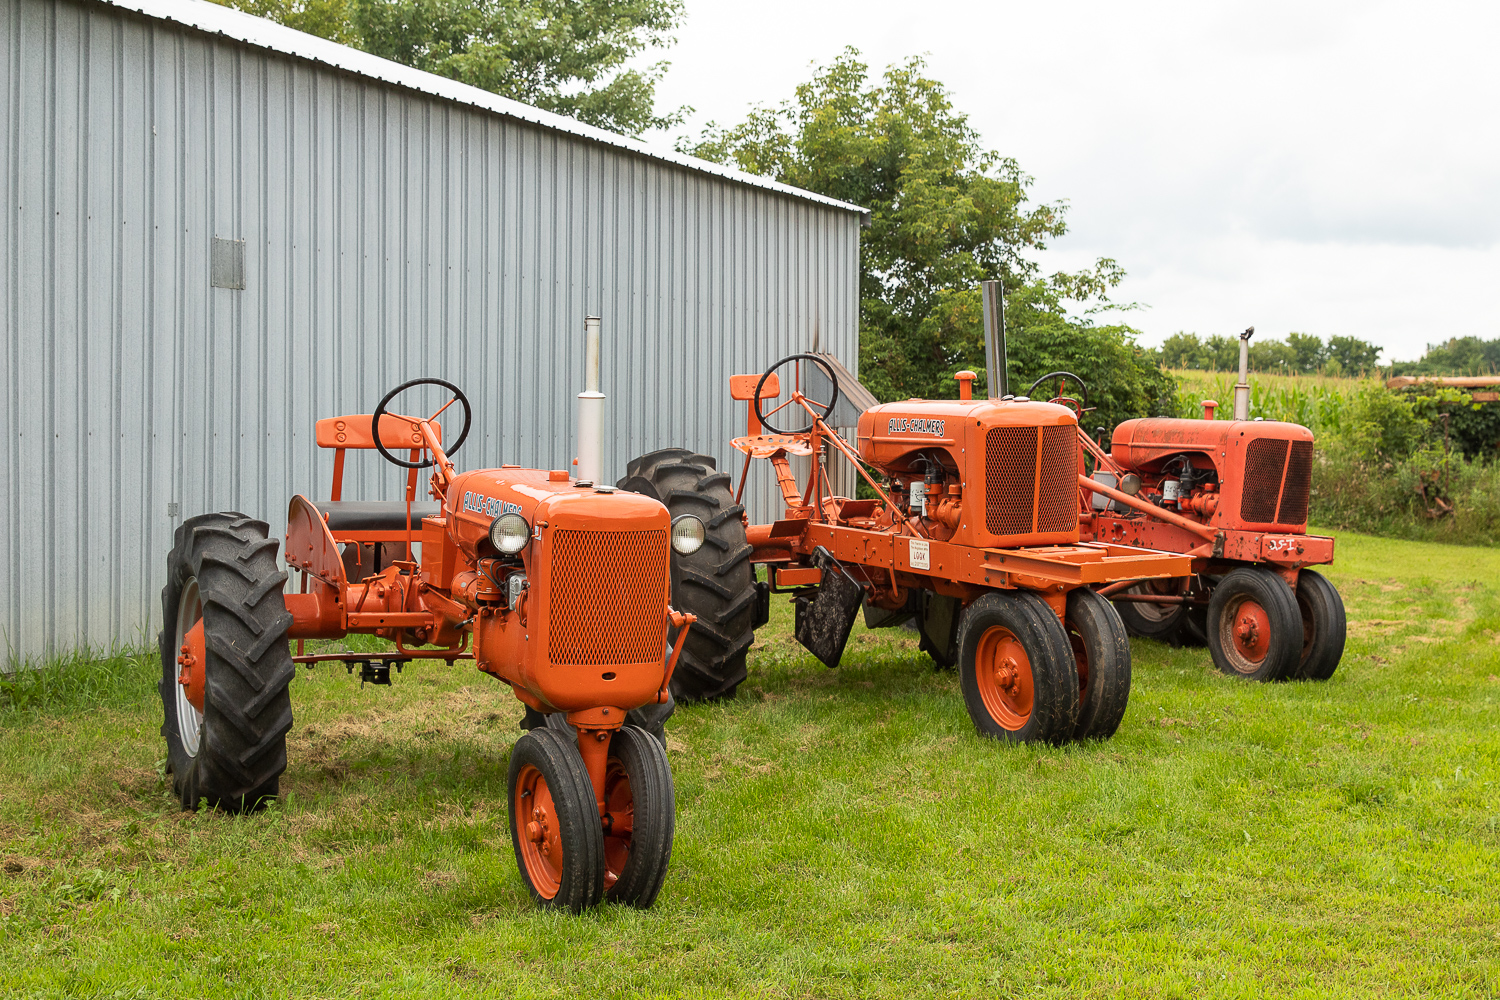 Every Tractor Has a Story': Al Deiss is on a mission to